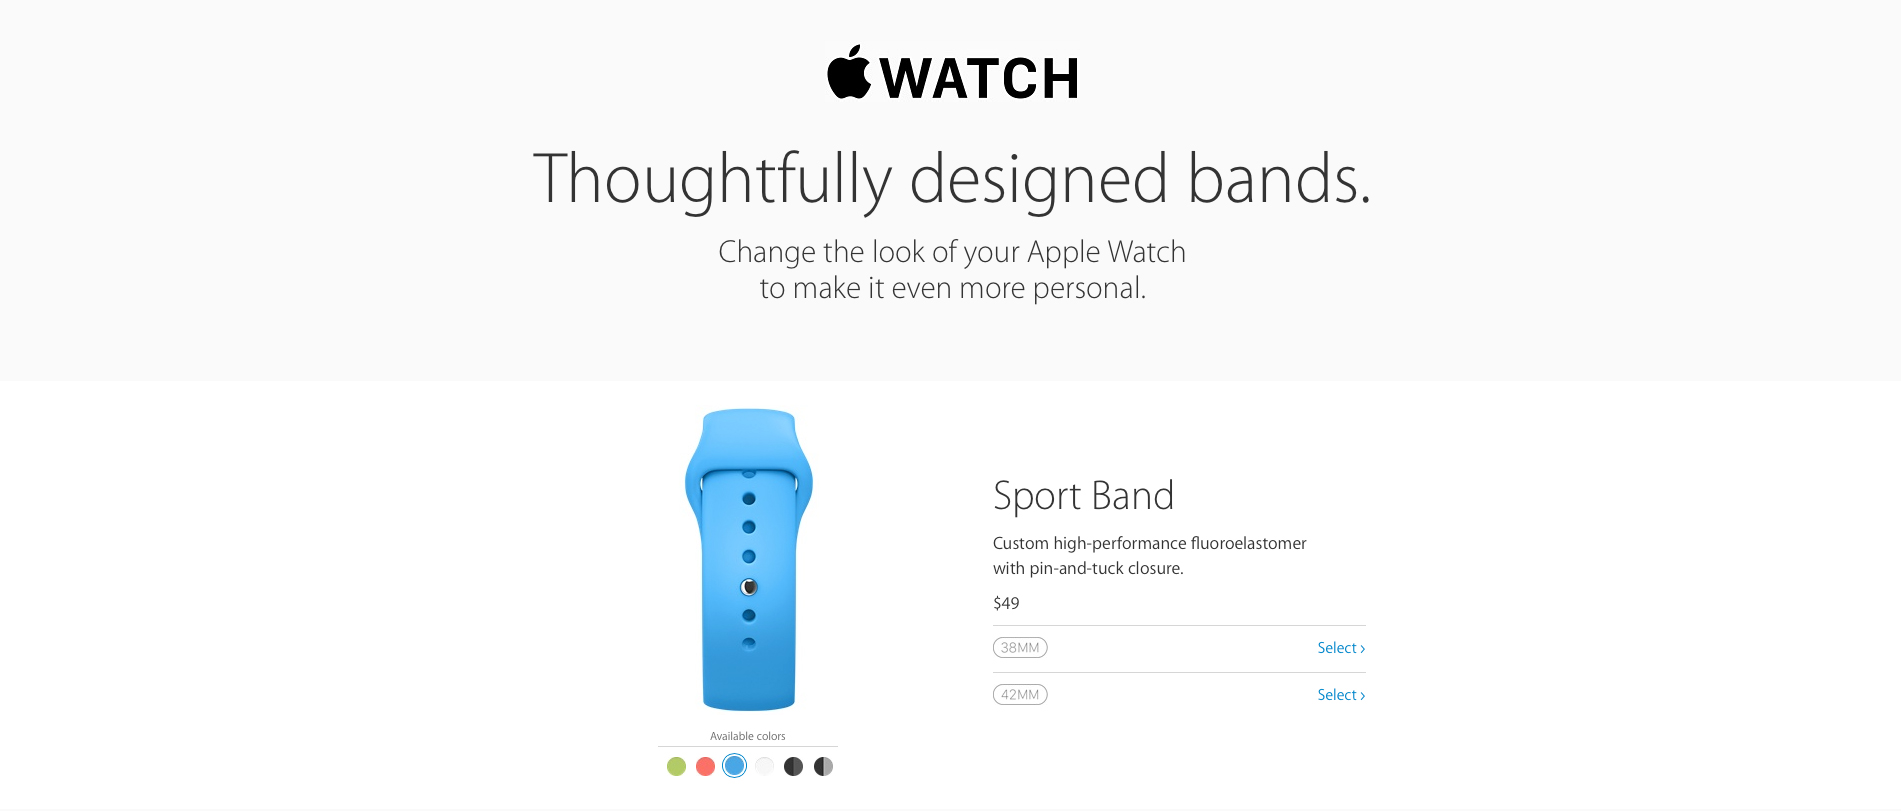 Many Apple Watch bands are now shipping in one business day